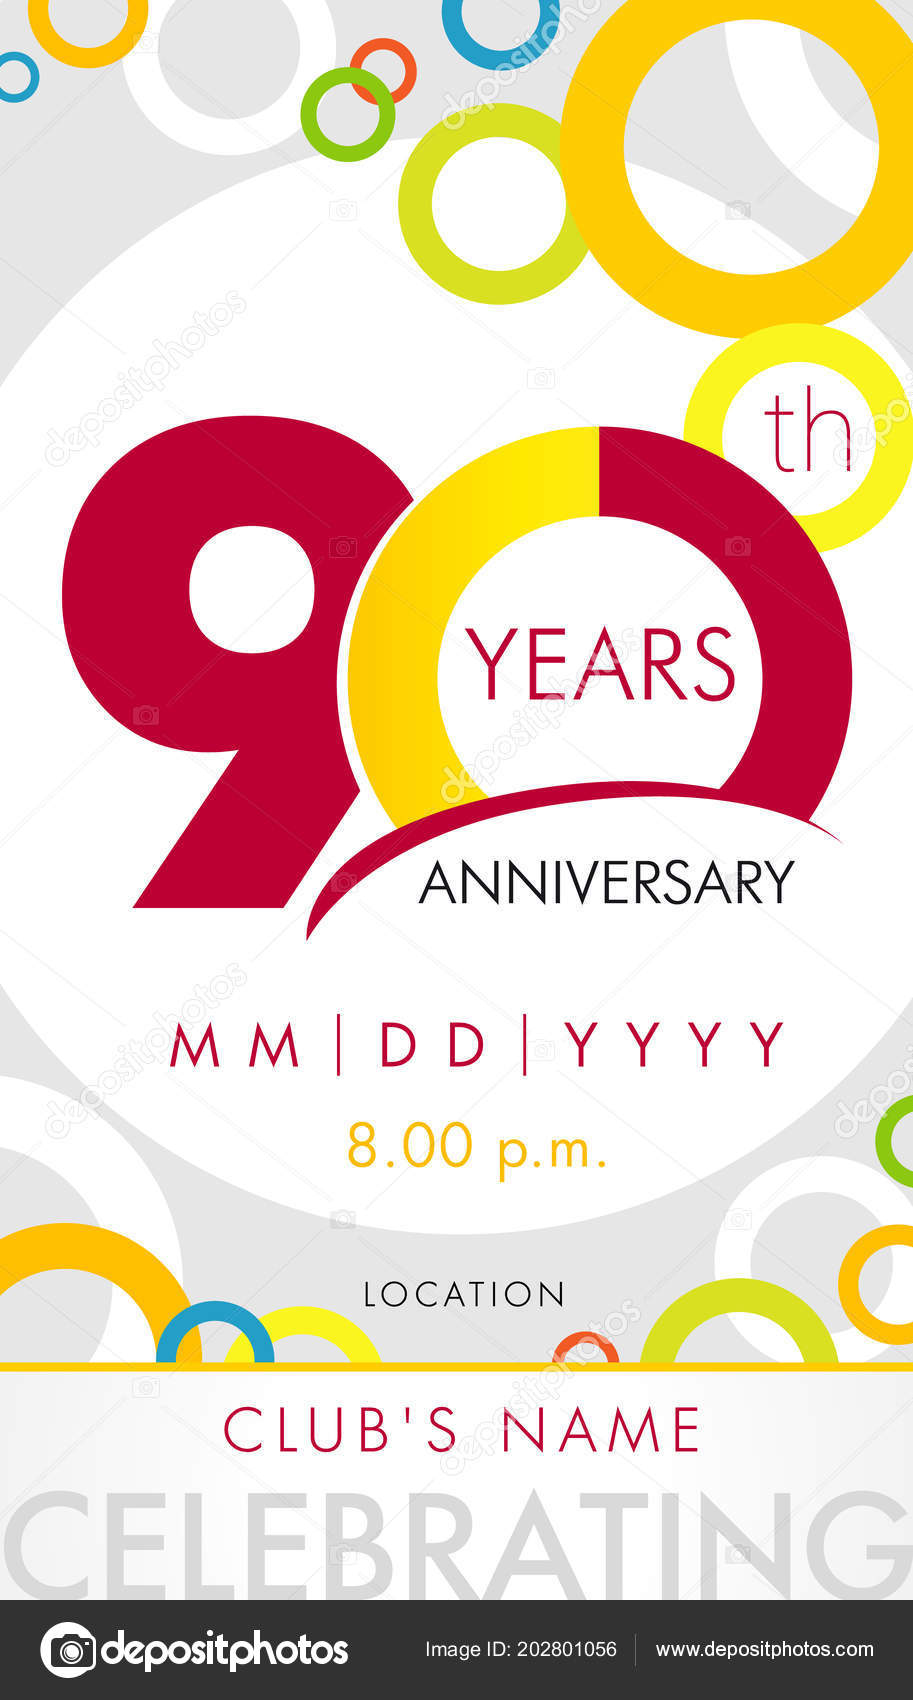 Years anniversary invitation card celebration template concept 90th 90 years anniversary invitation card celebration template concept 90th years anniversary modern design elements with background colored circles stopboris Gallery